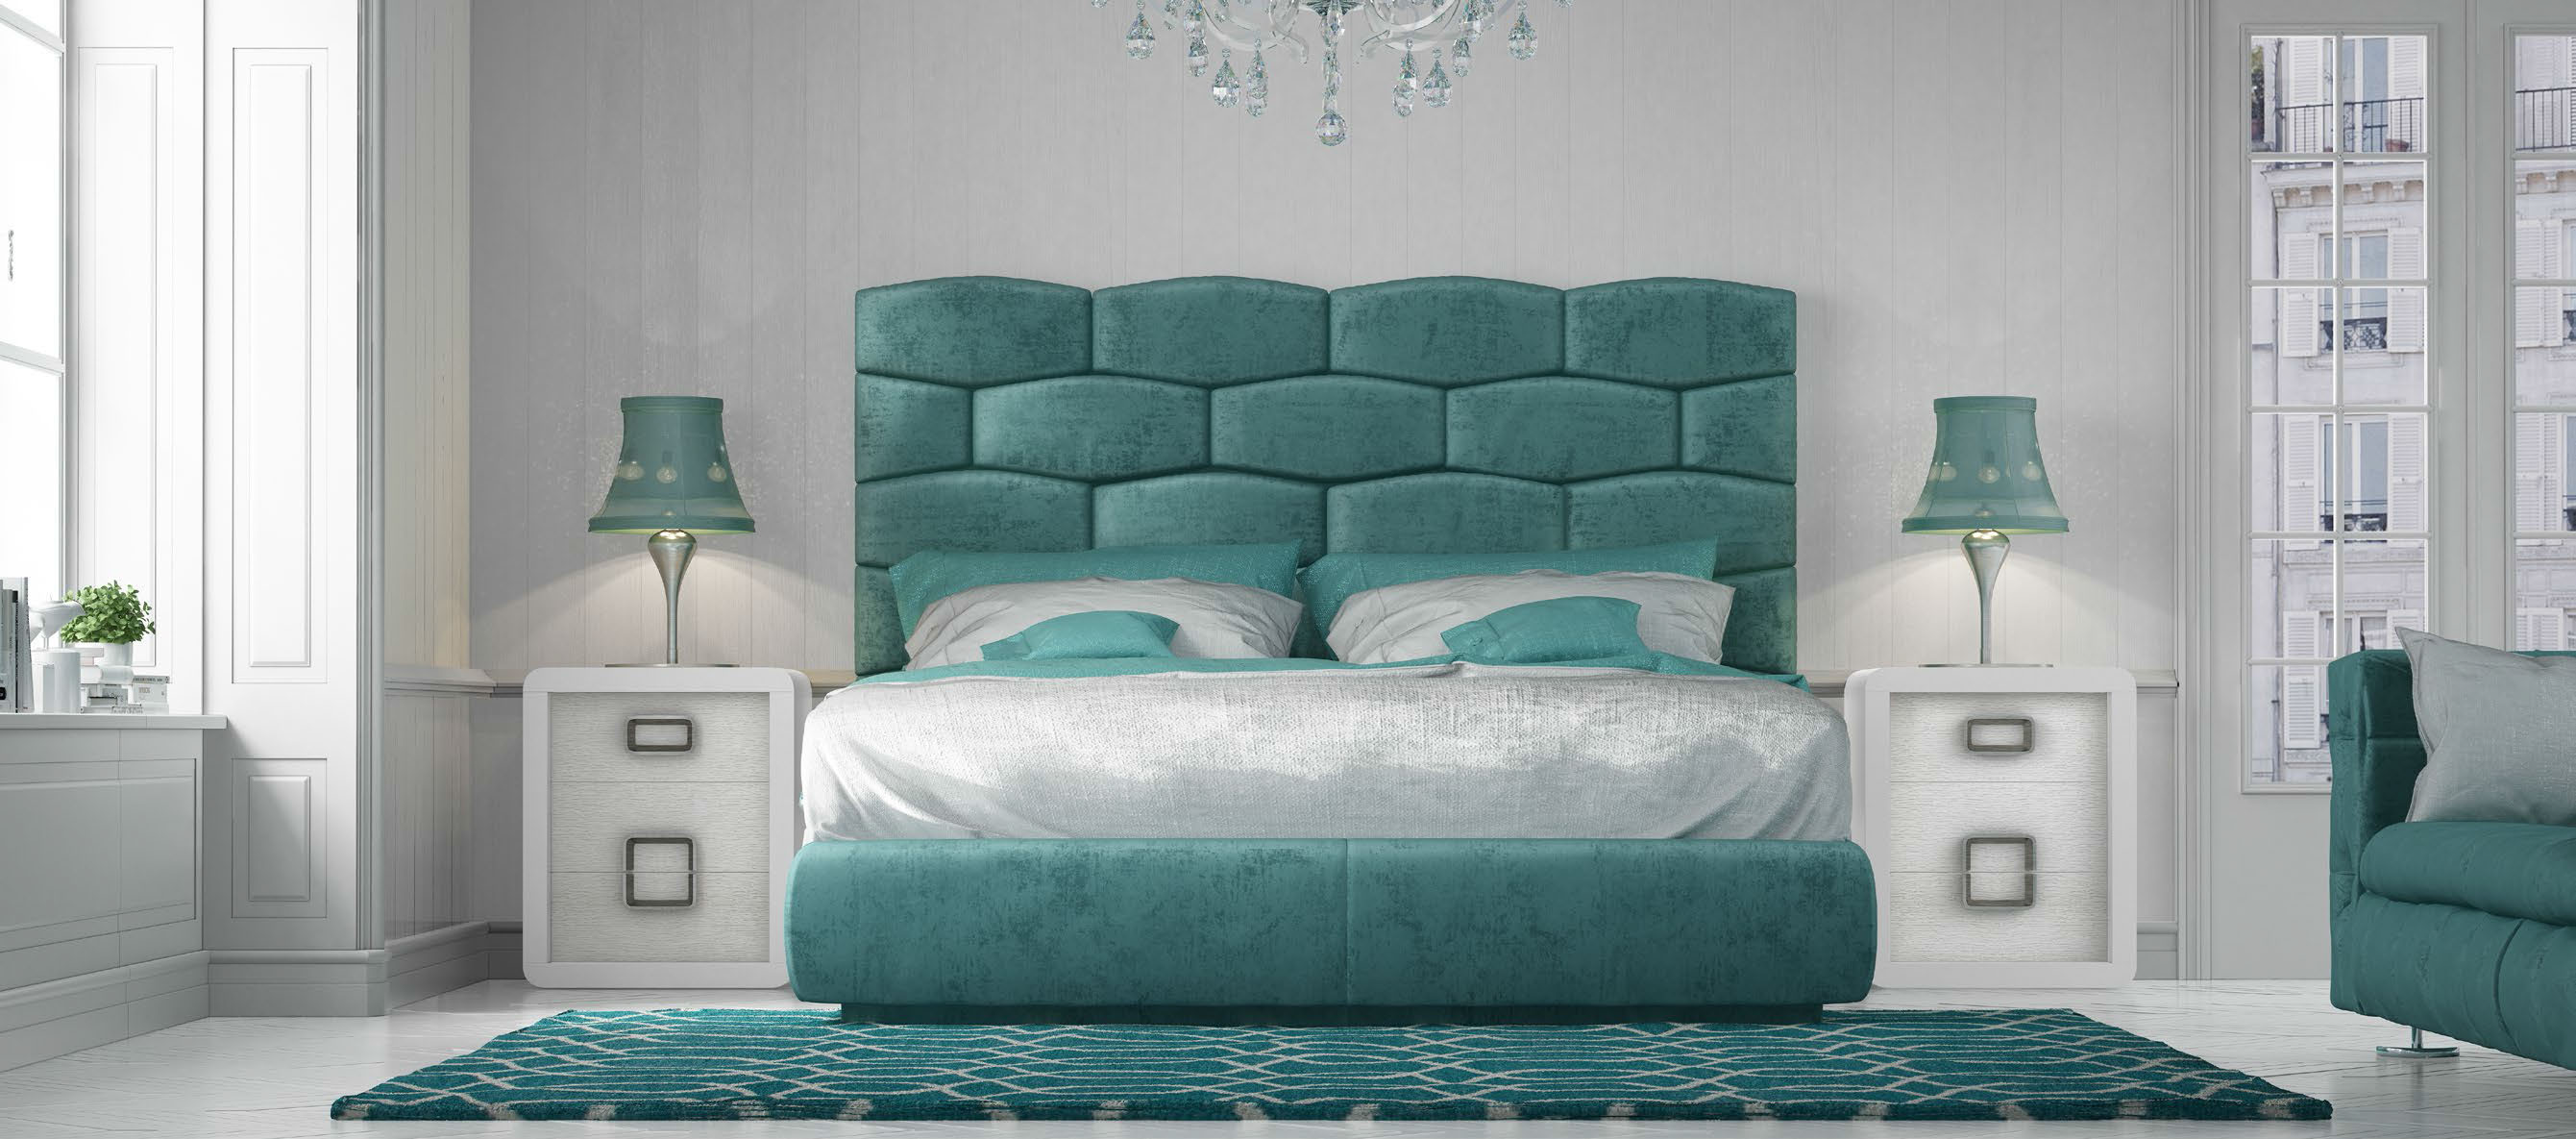 Brands Franco Furniture Bedrooms vol3, Spain DOR 178